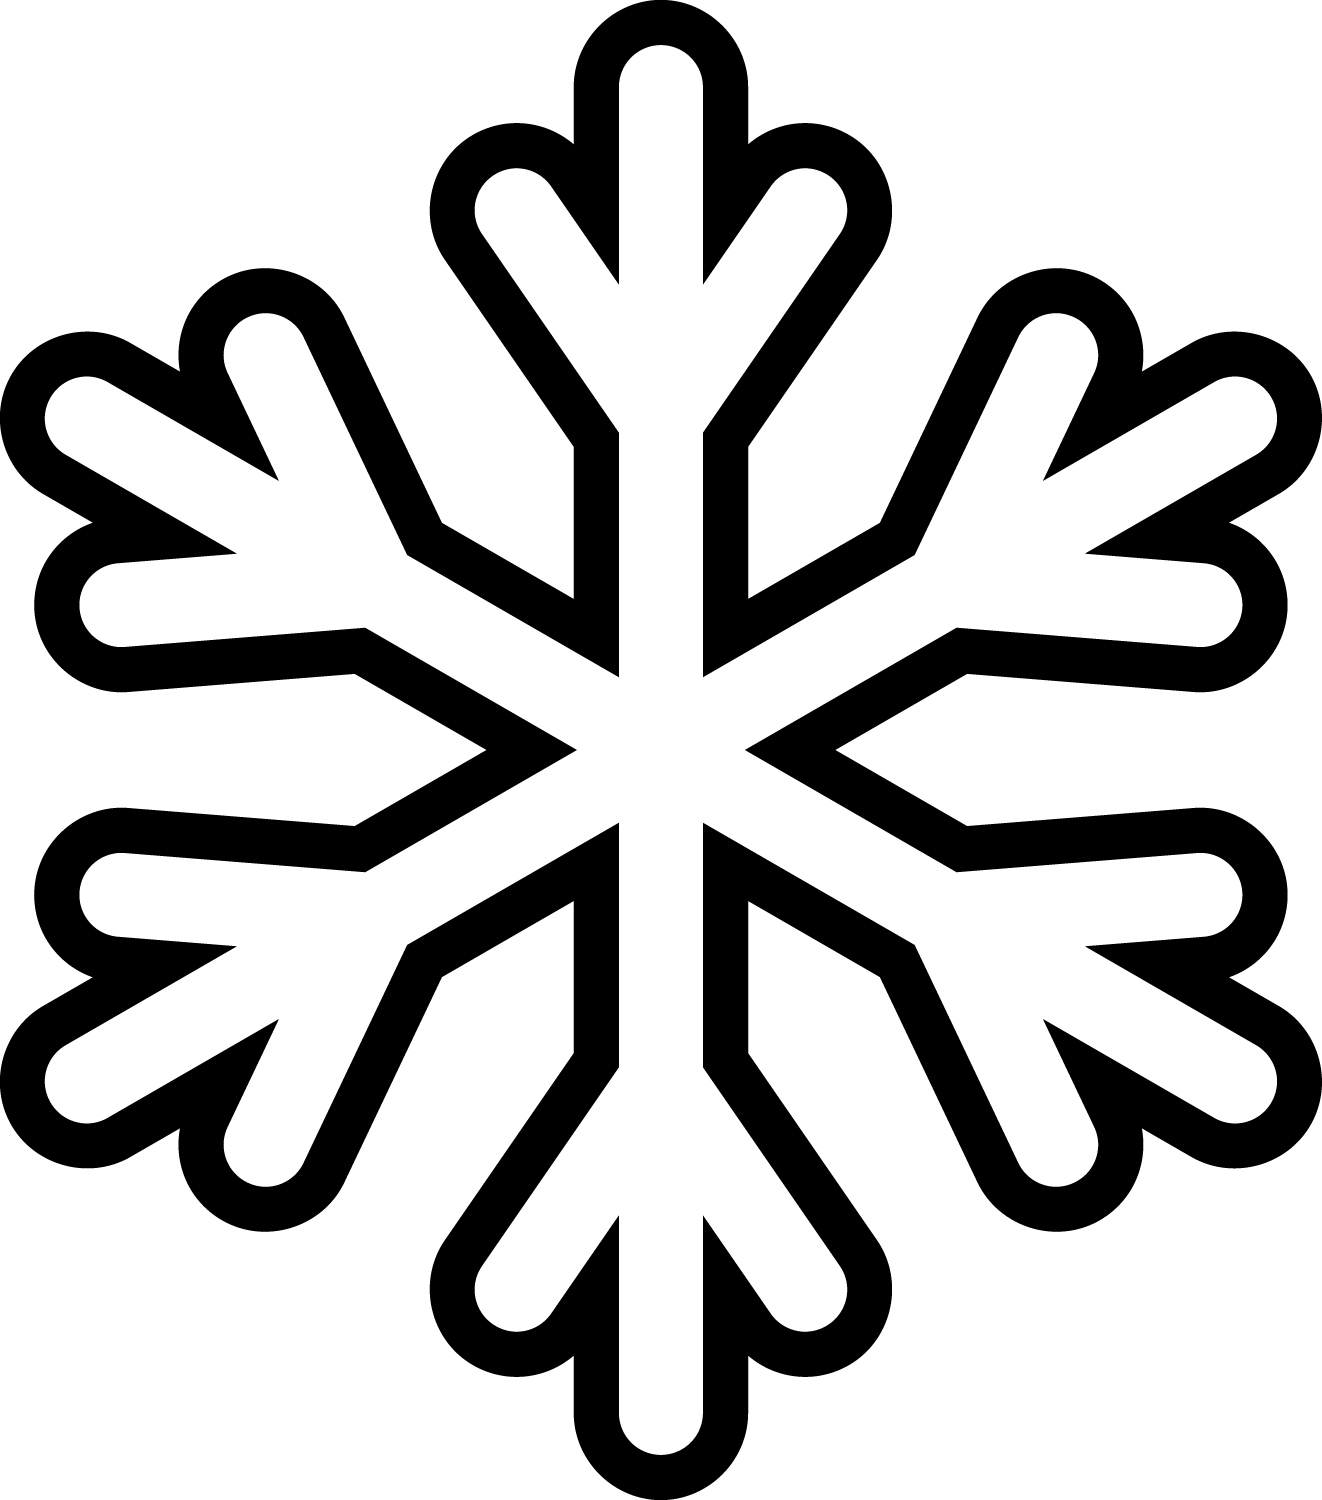 Library of svg snowflake clip art png files ▻▻▻ Clipart.